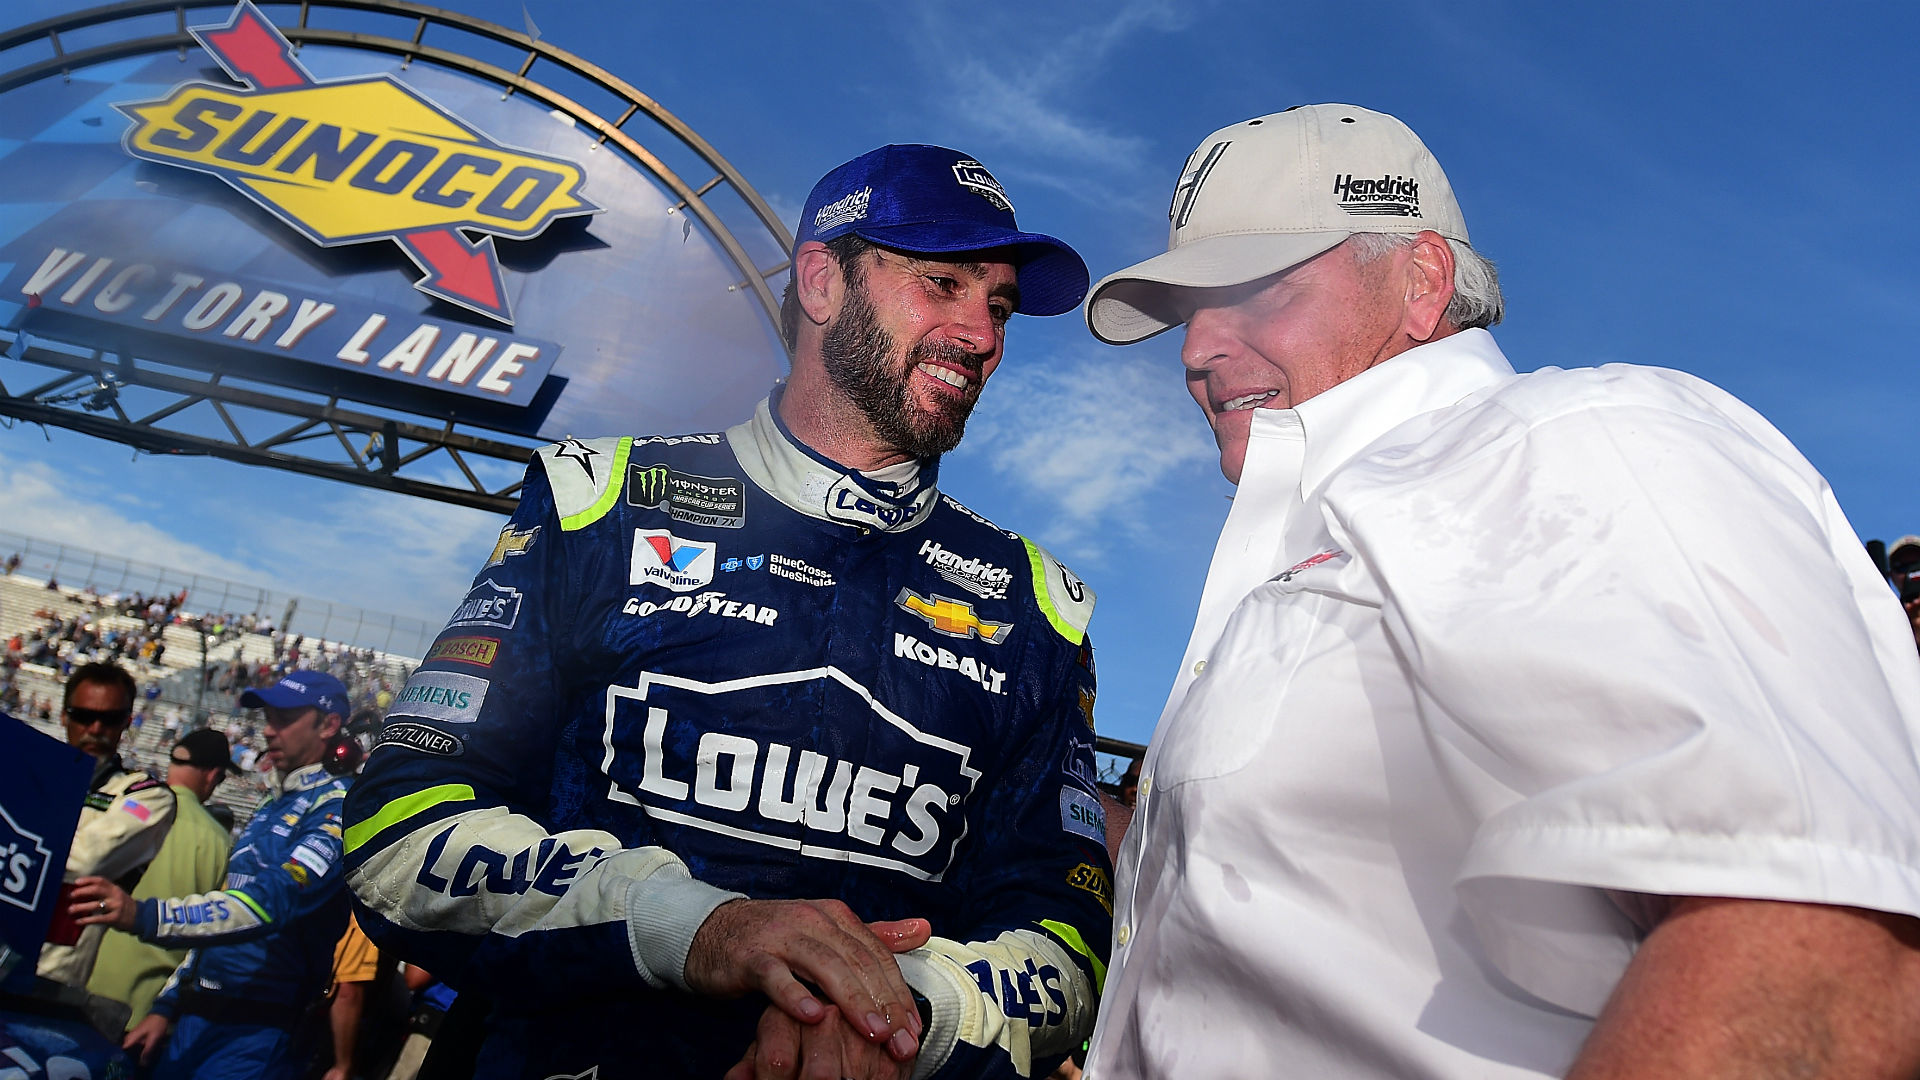 Jimmie Johnson Stays in NASCAR Through 2020